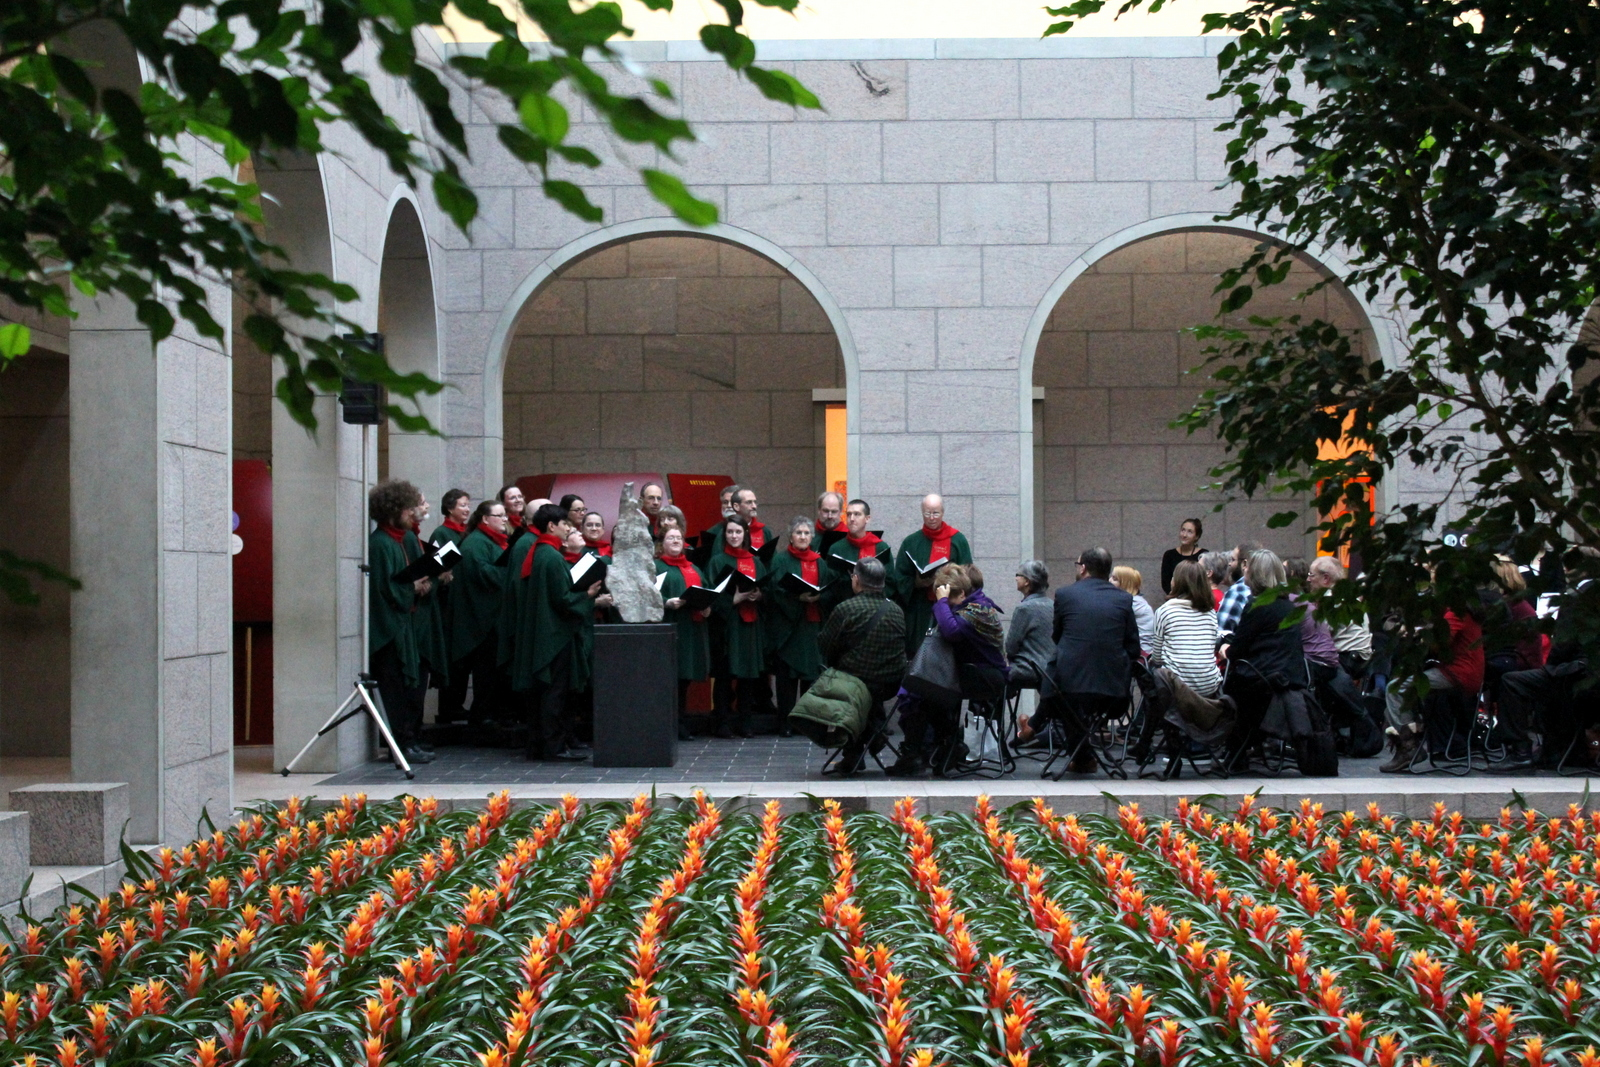 The Stairwell Carollers sing before a sea of bromeliads in the cloister at the National Gallery